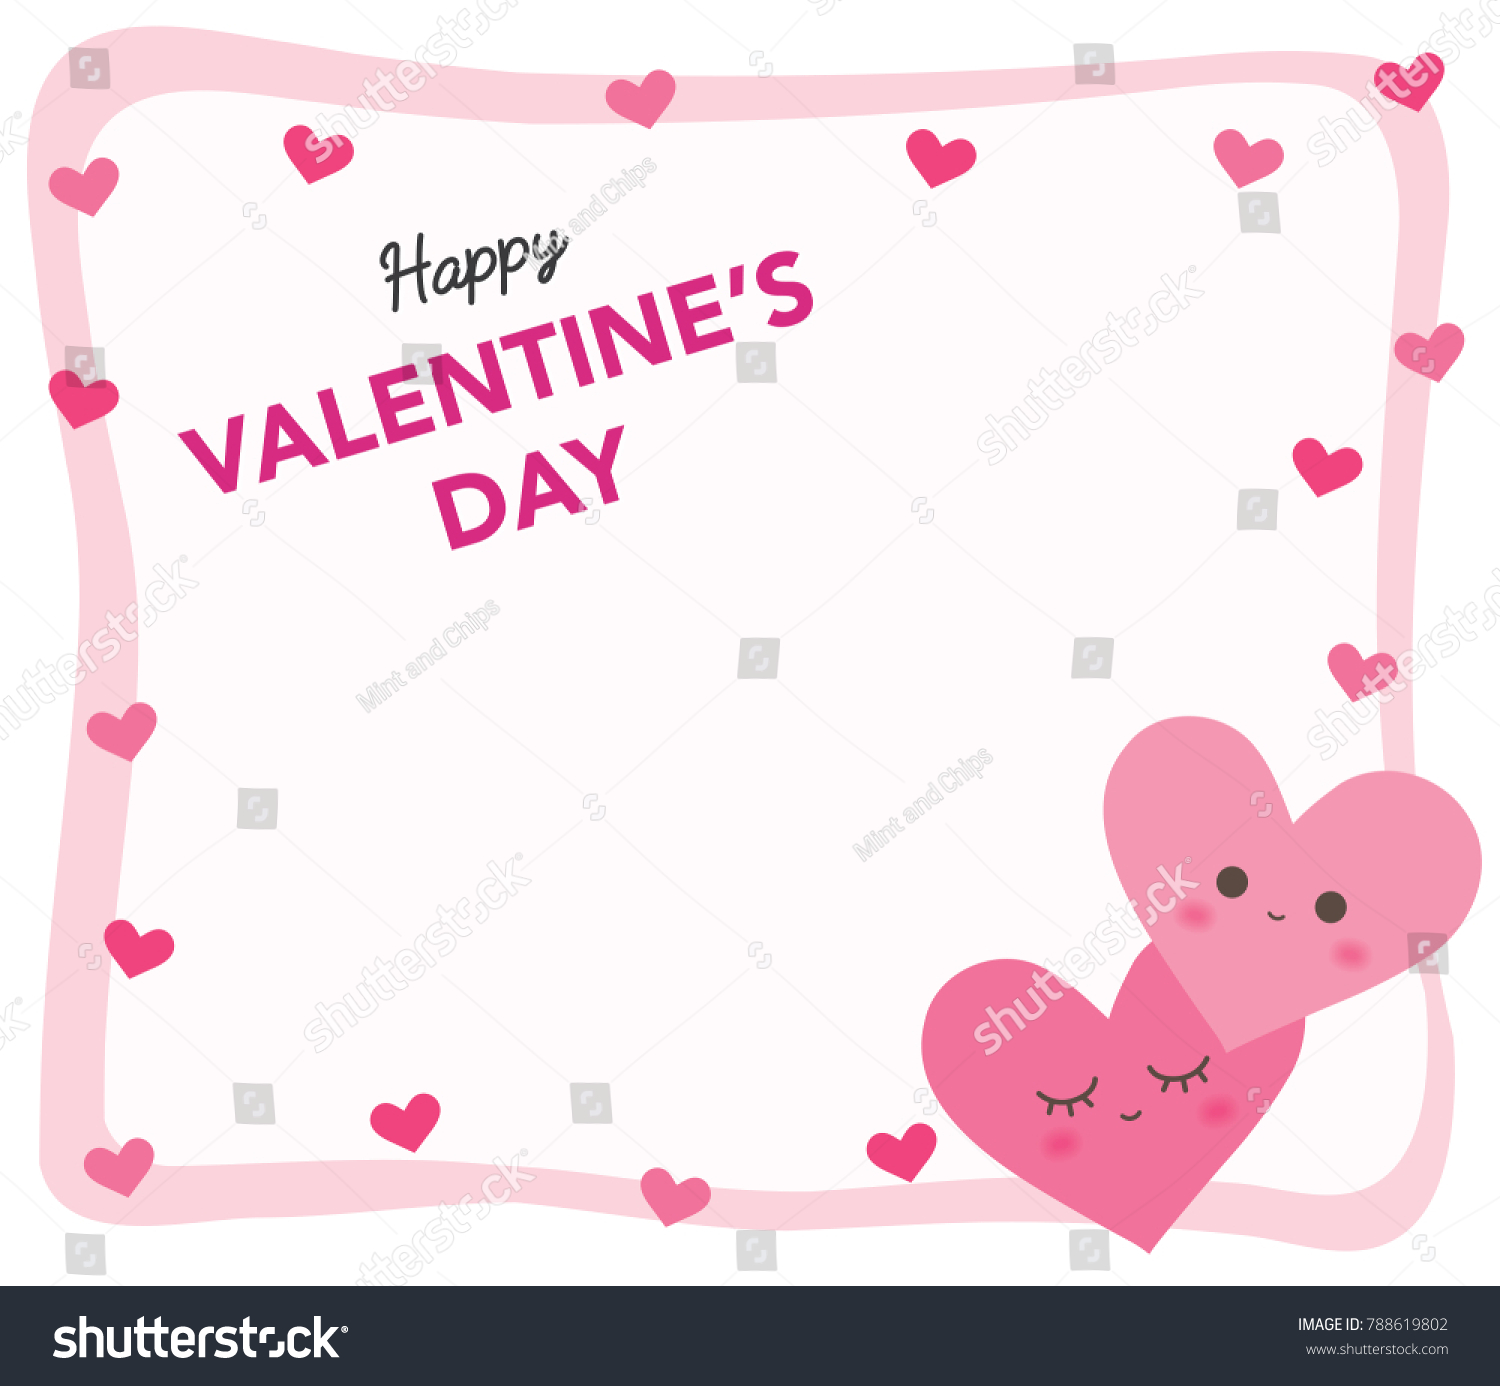 Cute Heart Frame Pink Valentines Day Stock Vector 788619802 ...